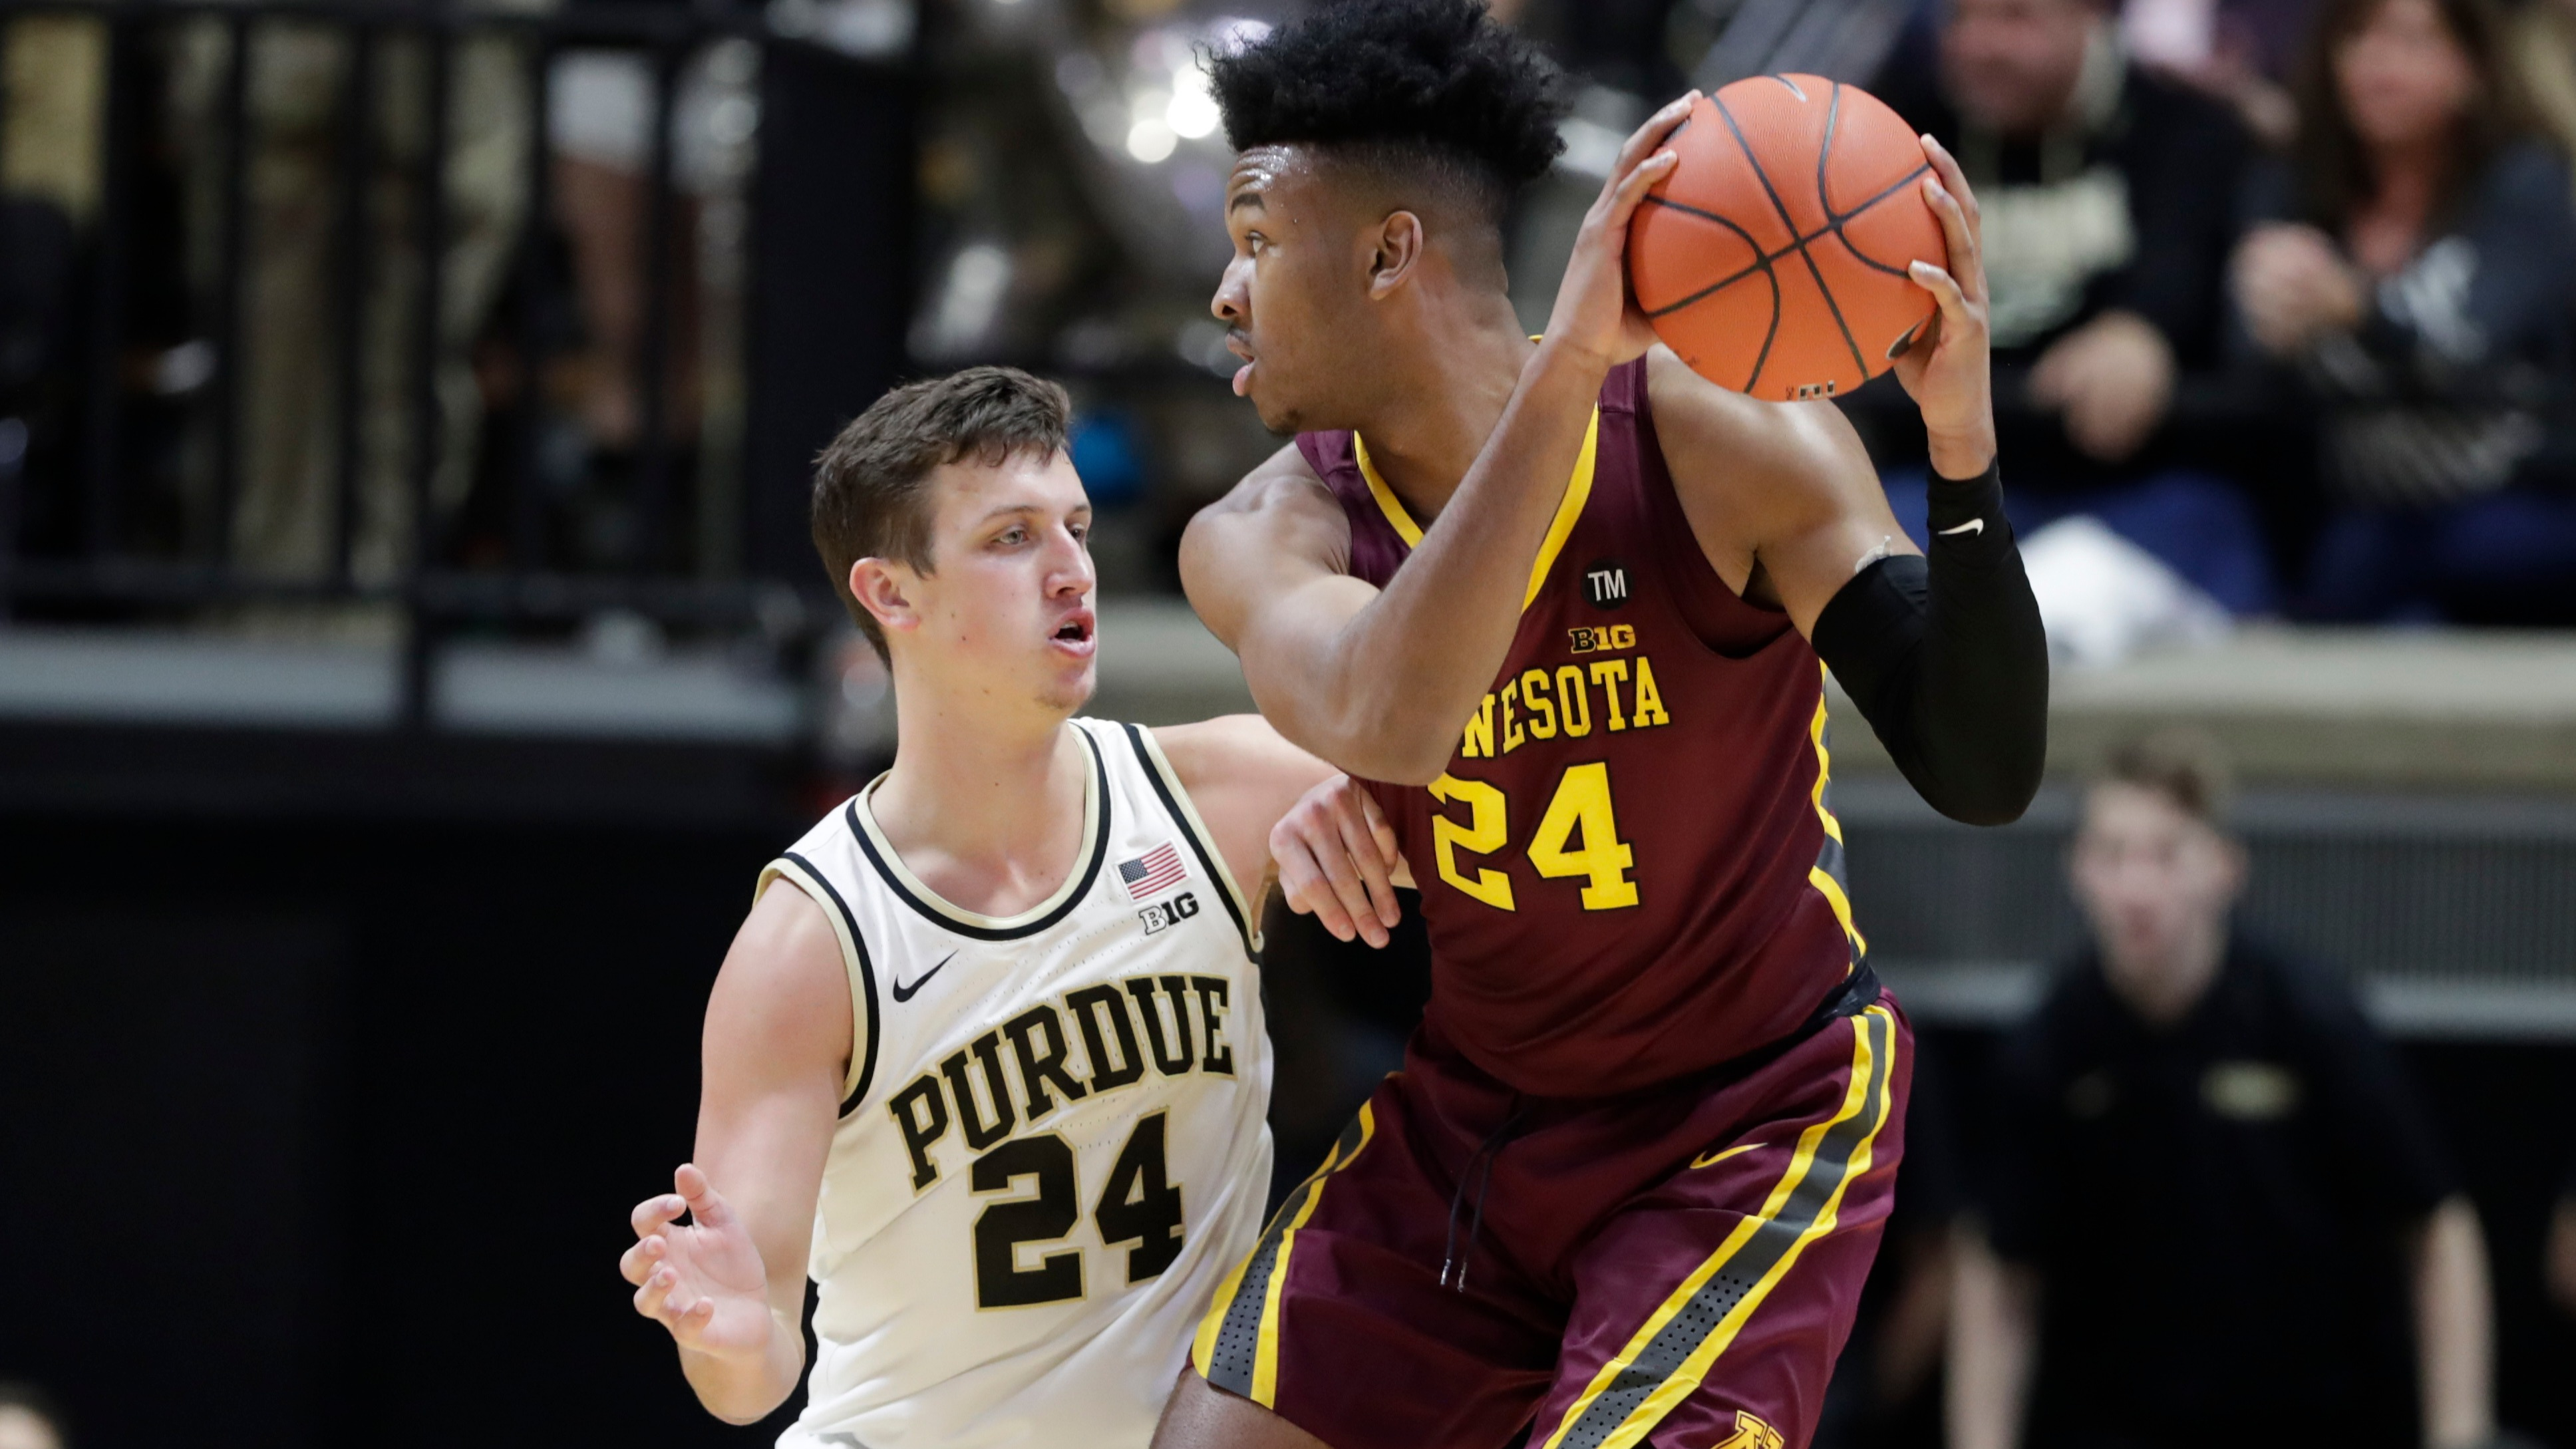 College basketball betting lines, odds, predictions: Tourney hopes